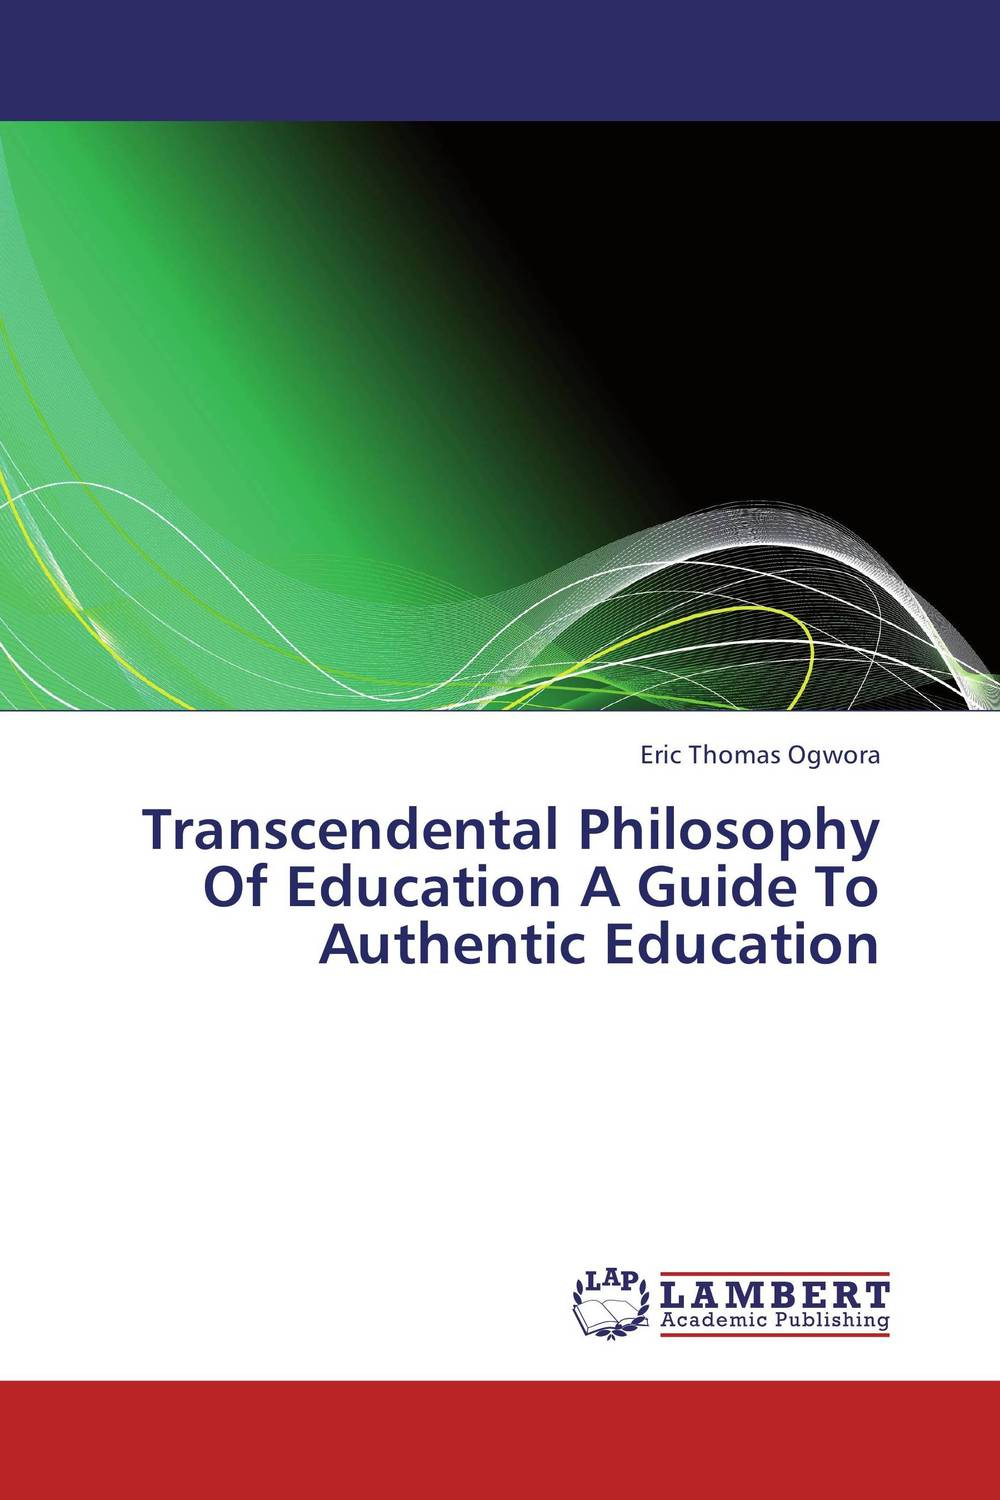 an analysis on transcendentalism a philosophy that has drastic views Check out our an analysis free summary an analysis on transcendentalism a philosophy that has drastic views analysis of benjamins franklin autobiography.